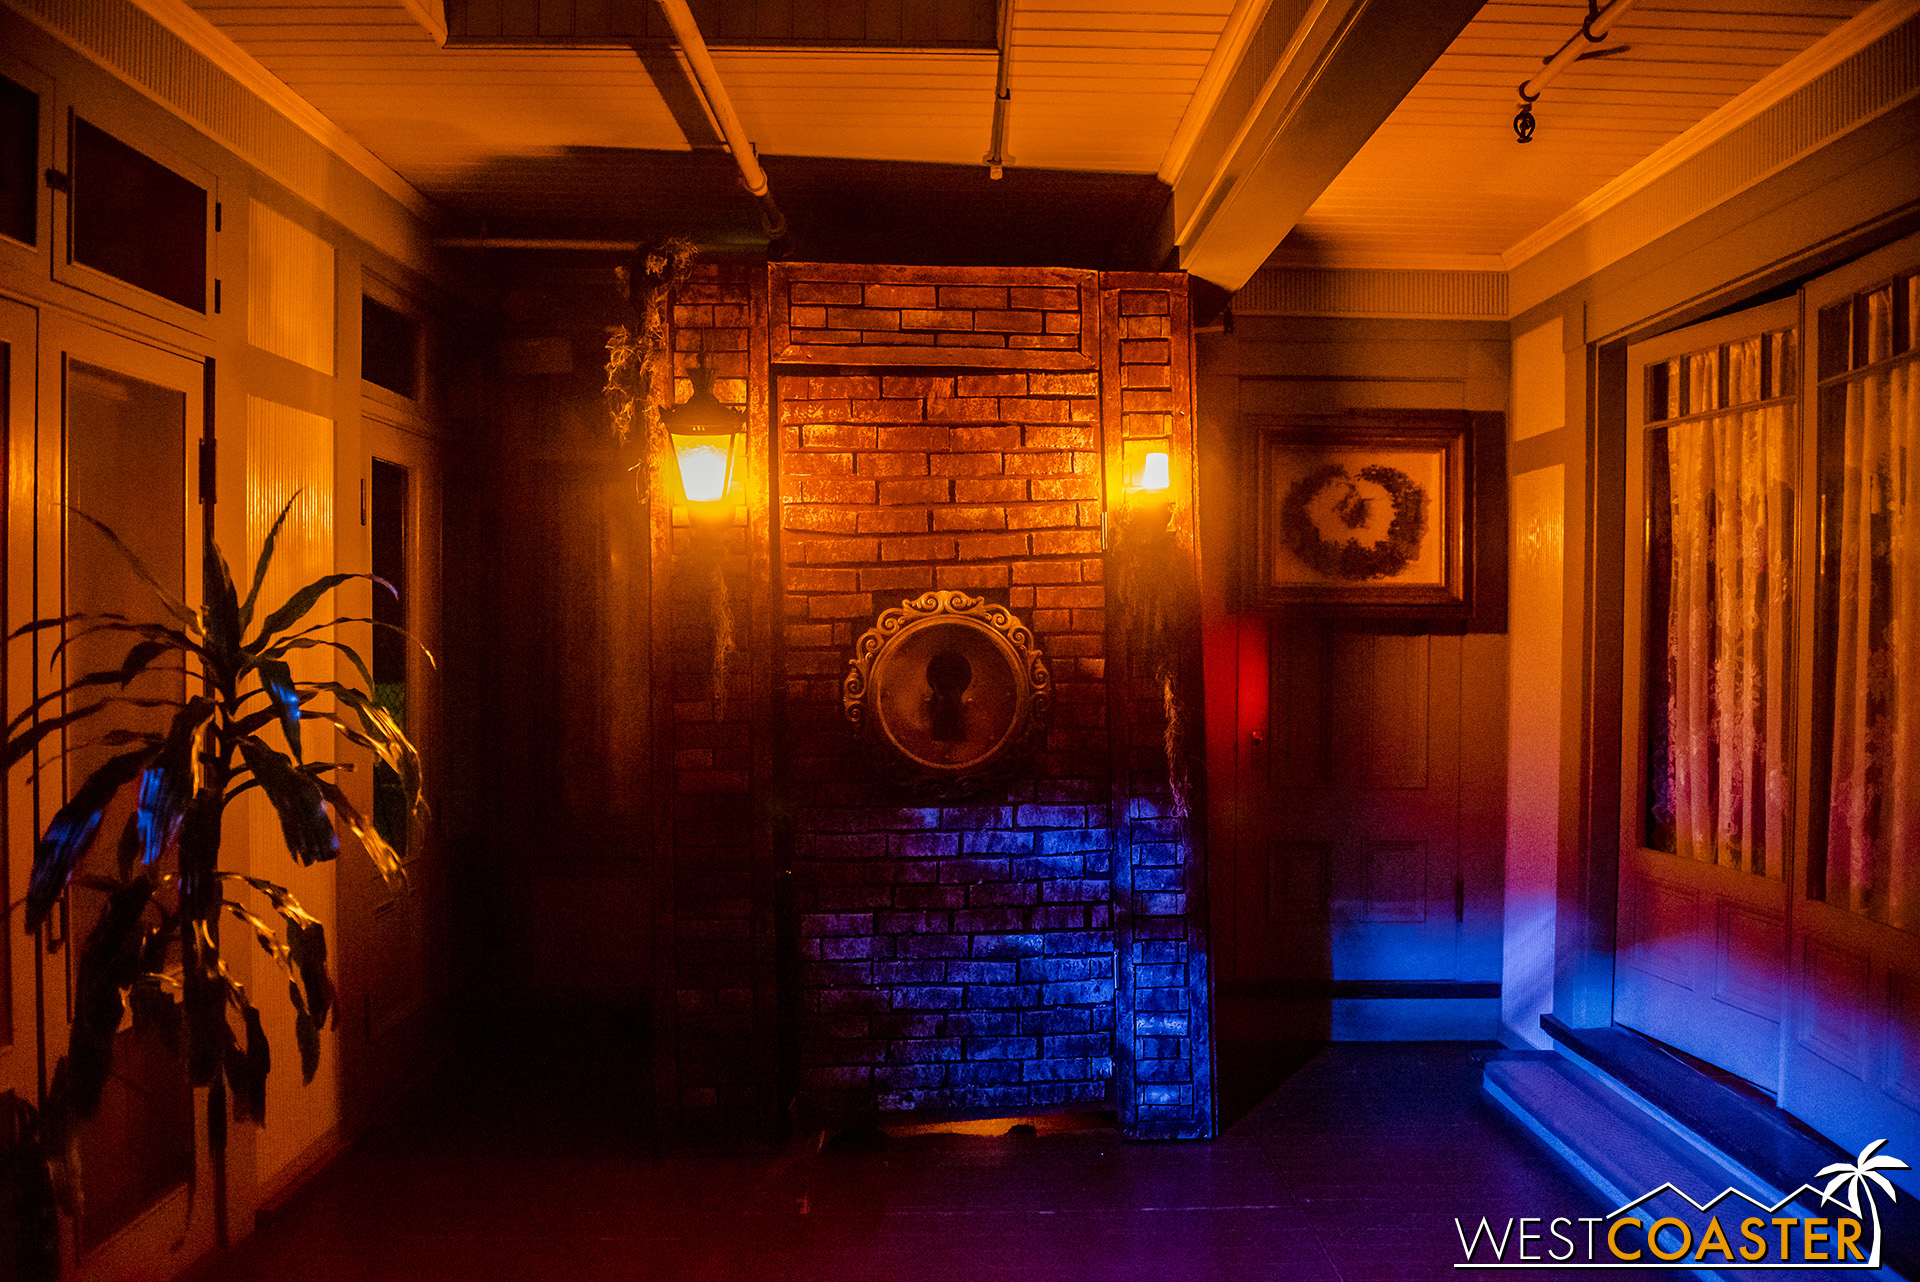 One of the 13 Doors within this year's Hallowe'en Candlelight Tour.